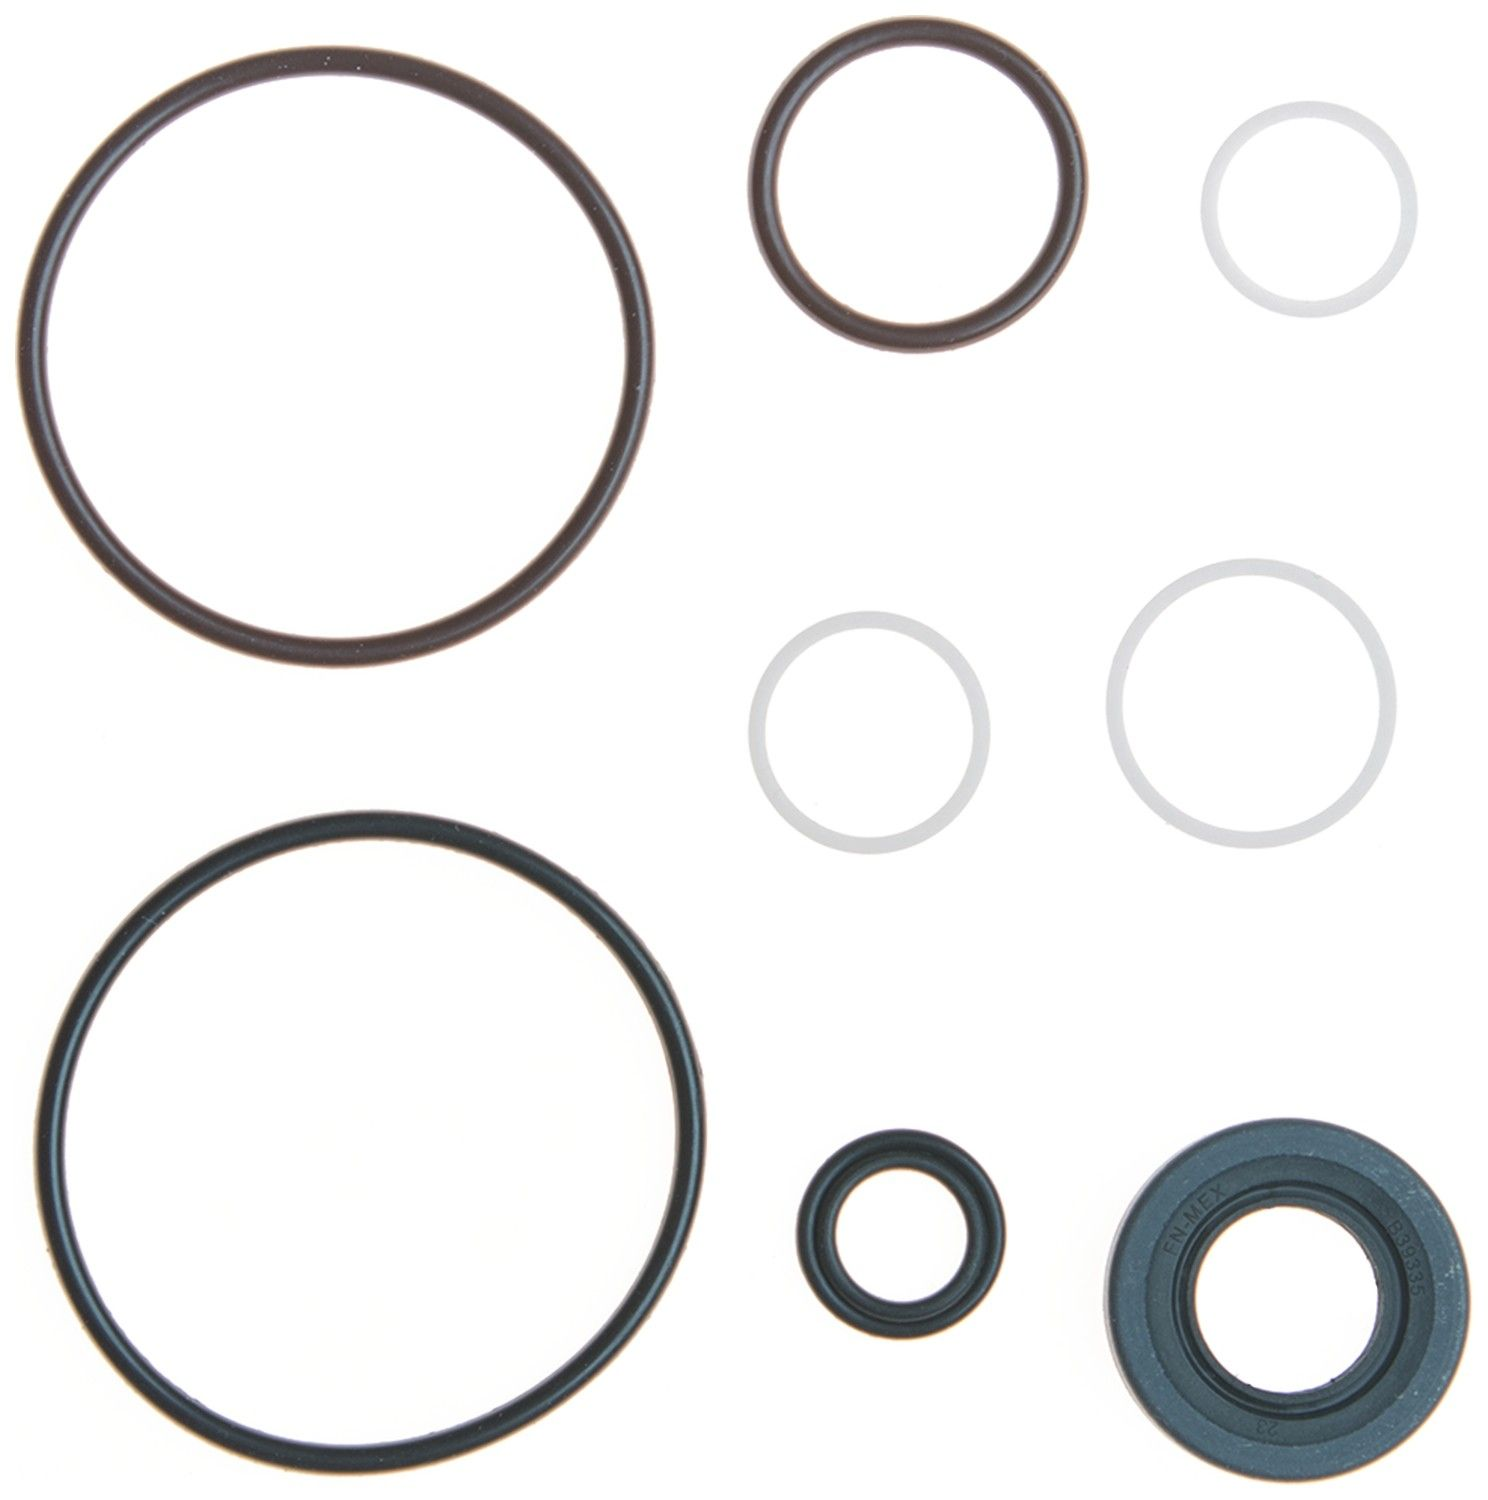 Ford Focus Power Steering Pump Seal Kit Replacement Edelmann Gates 2010 Engine Diagram 2009 4 Cyl 20l 349010